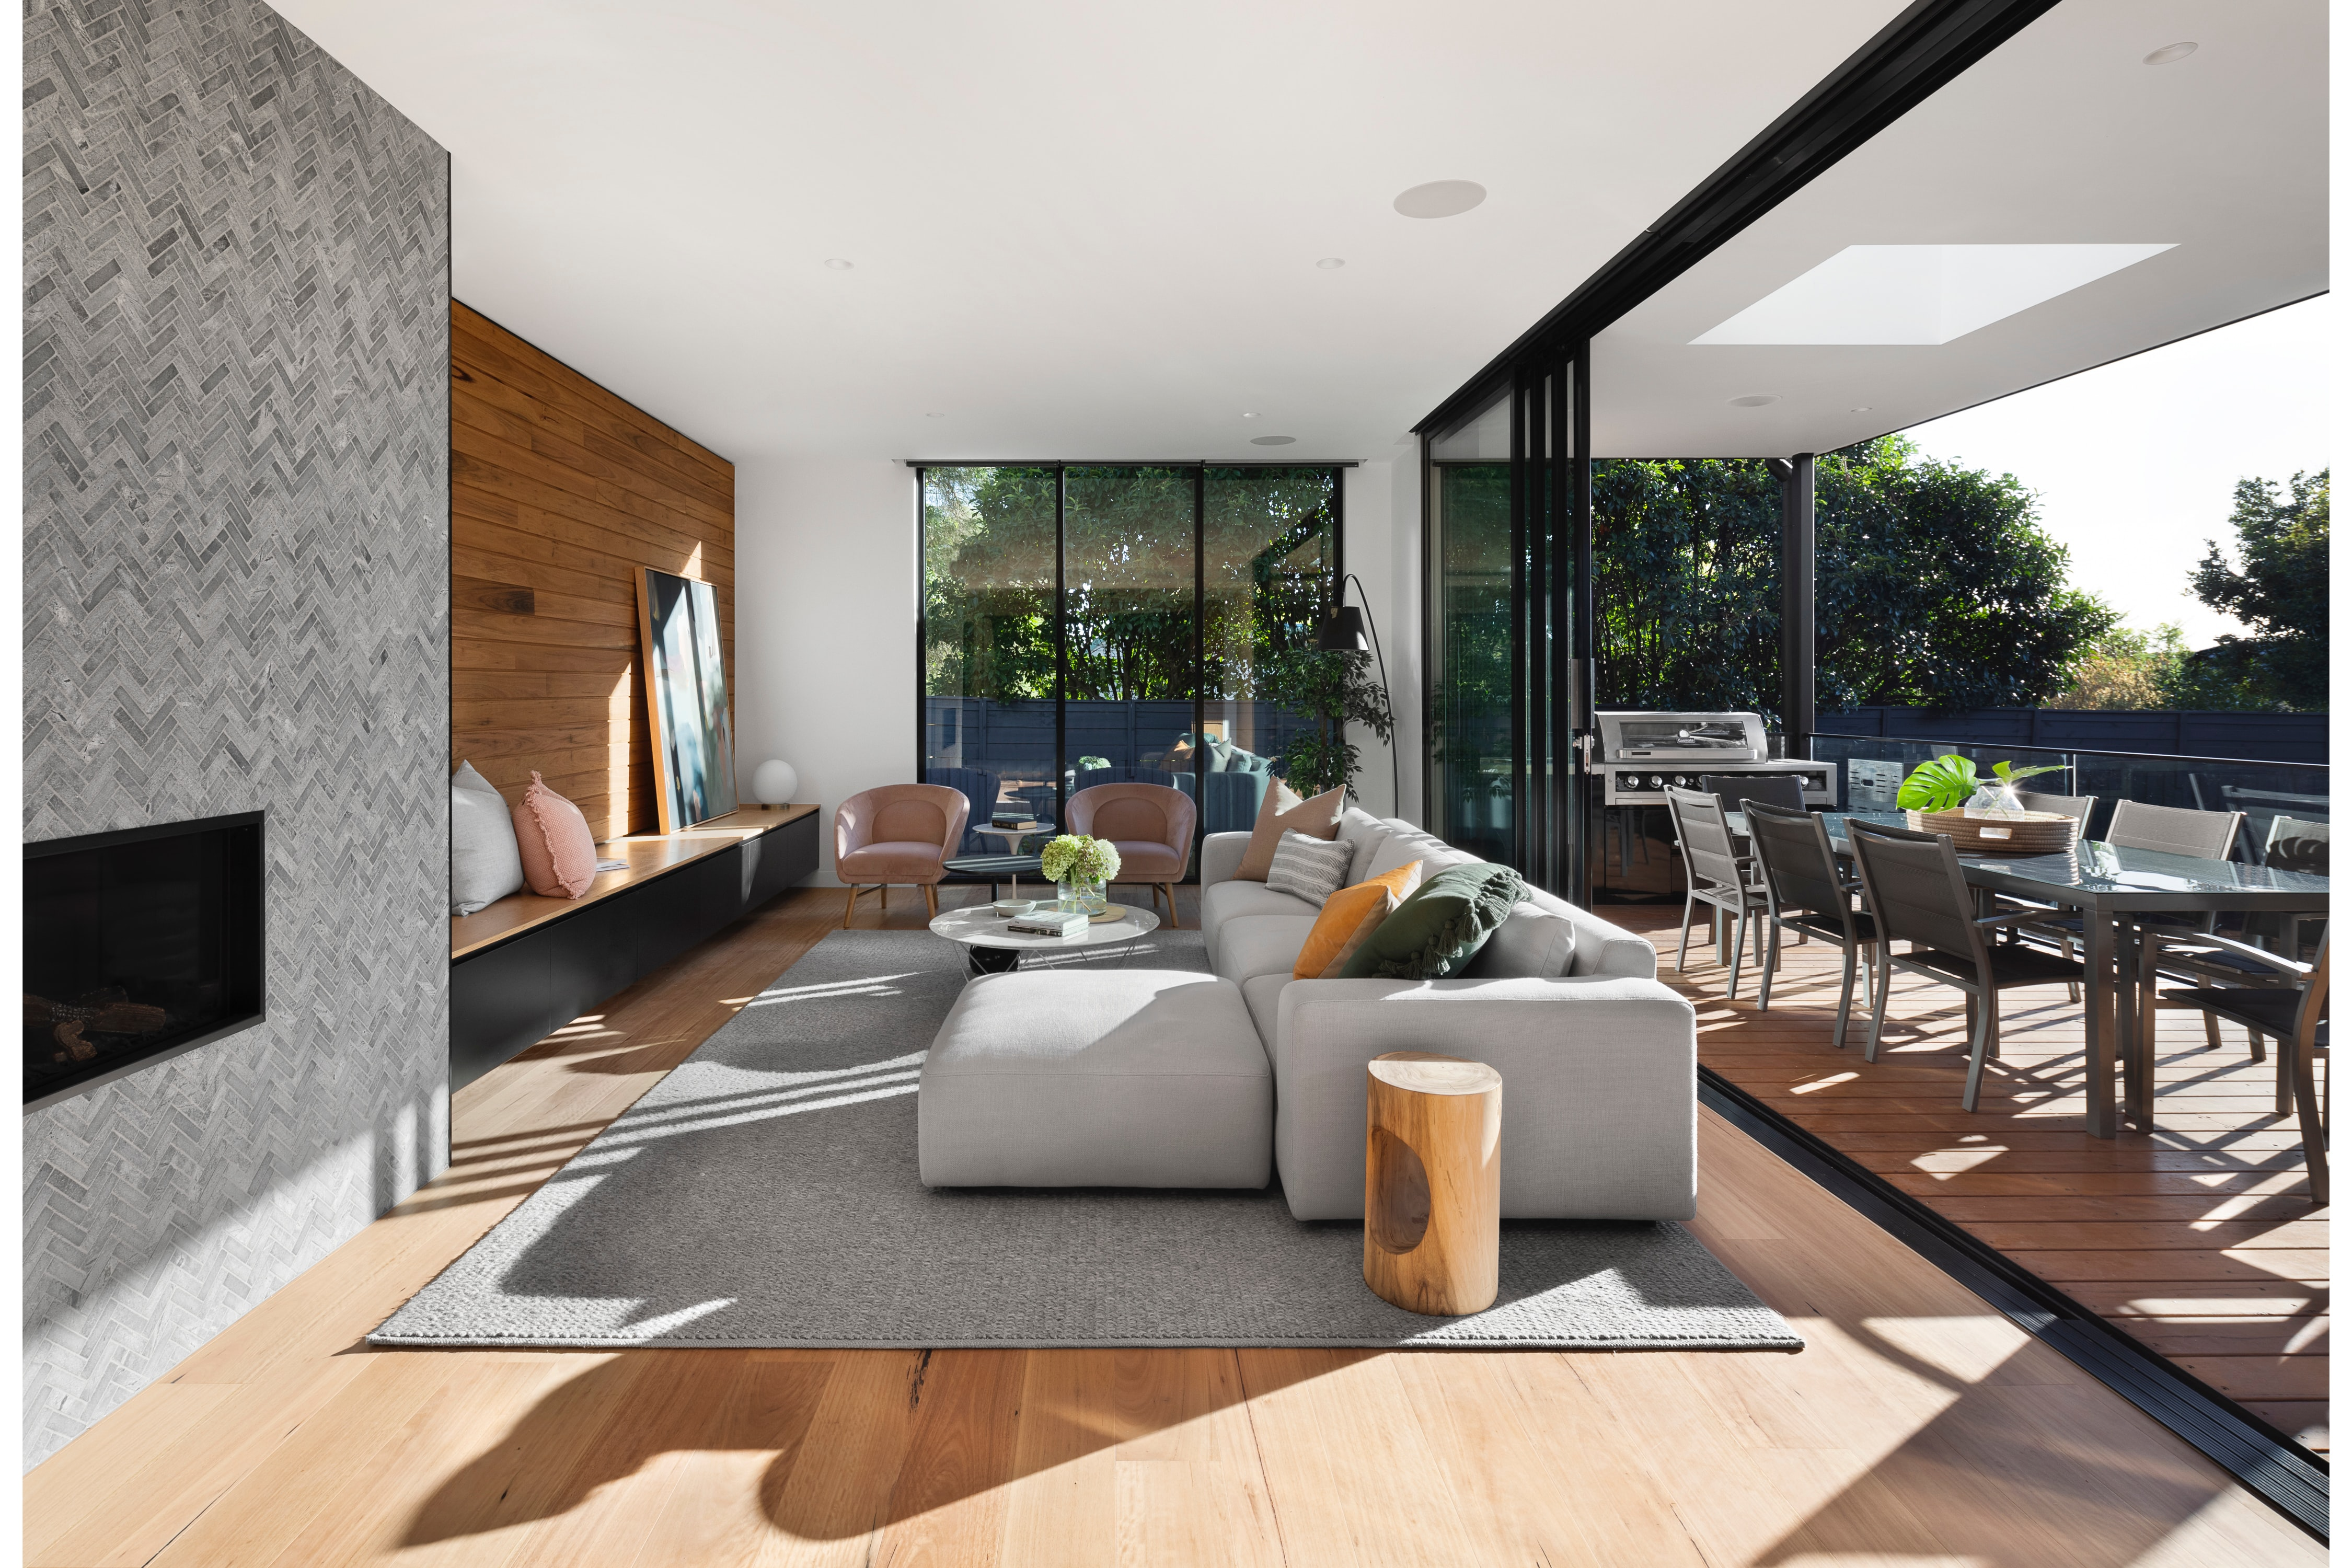 A modern residential interior with polished concrete floor